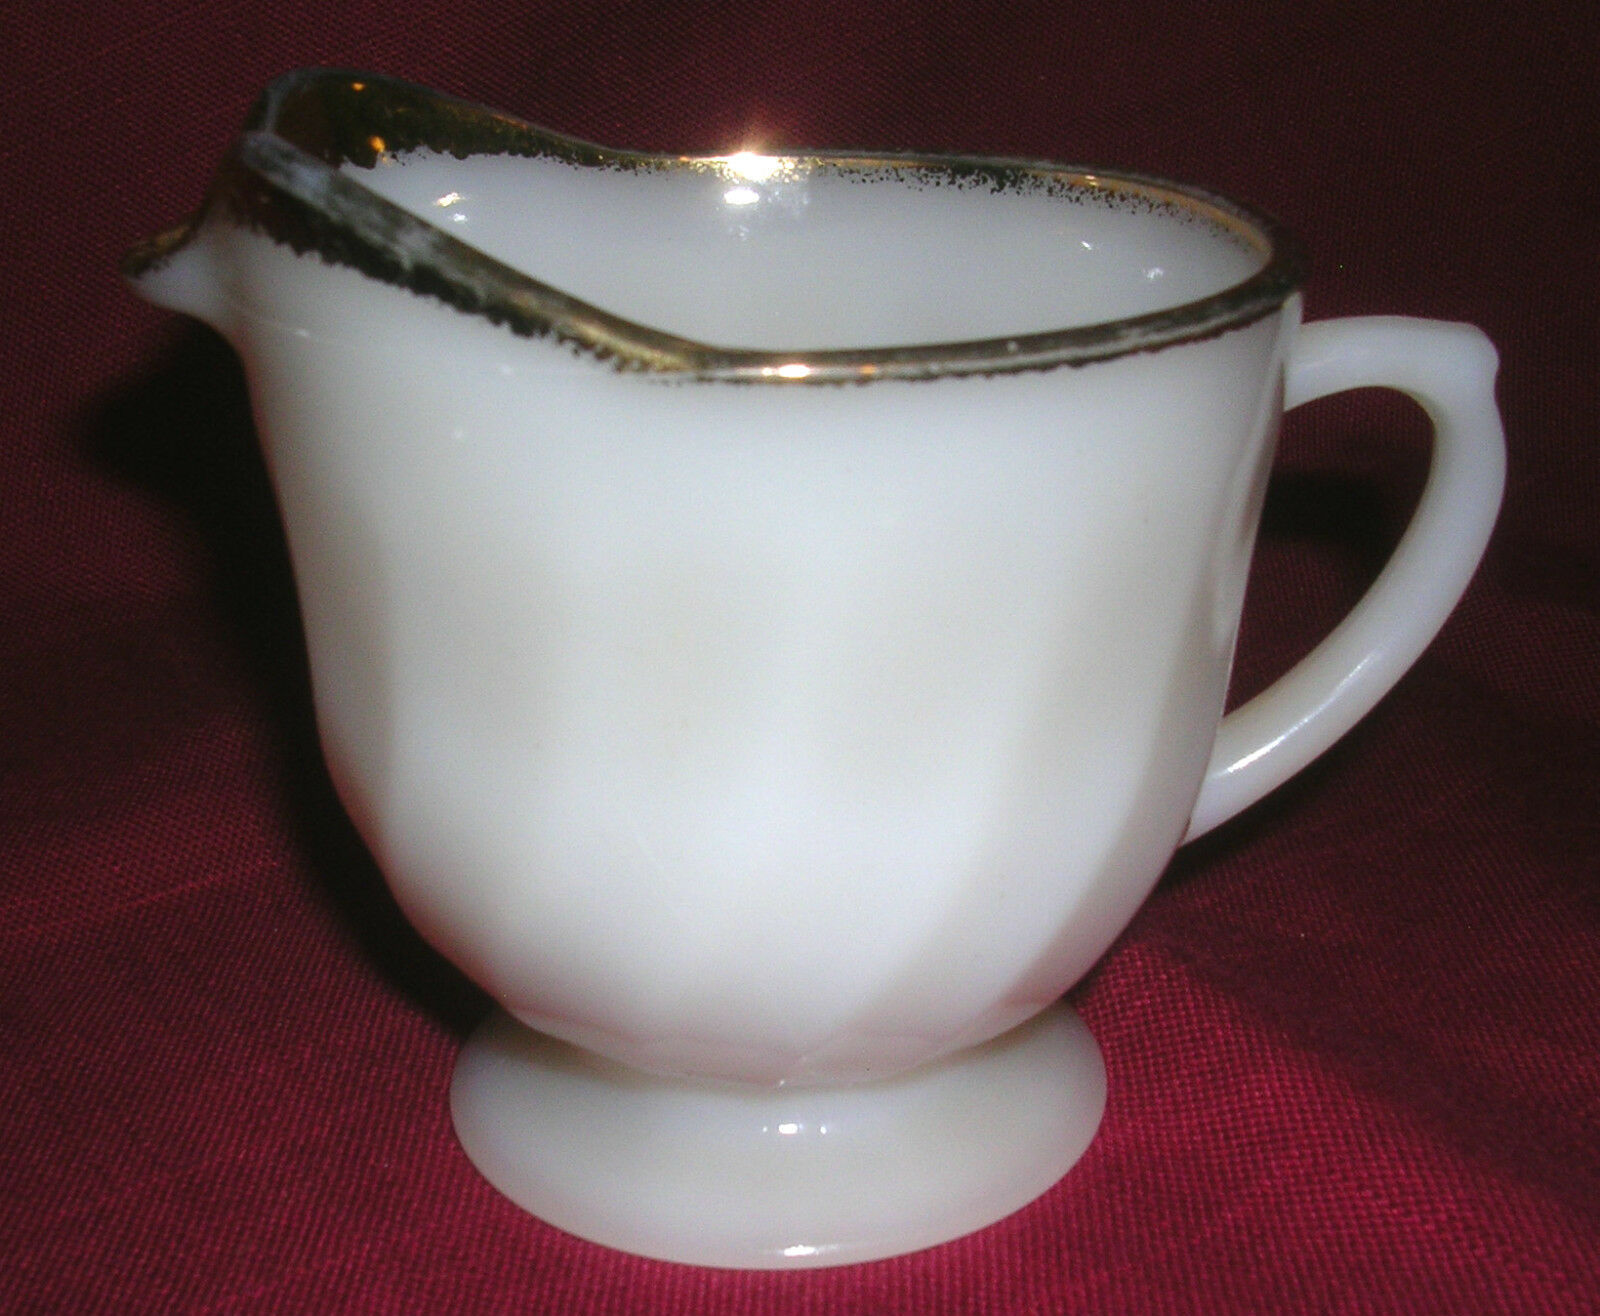 Primary image for Old Vintage Fire King Oven Ware Creamer White Swirl Gold Trim Kitchen Tool MCM